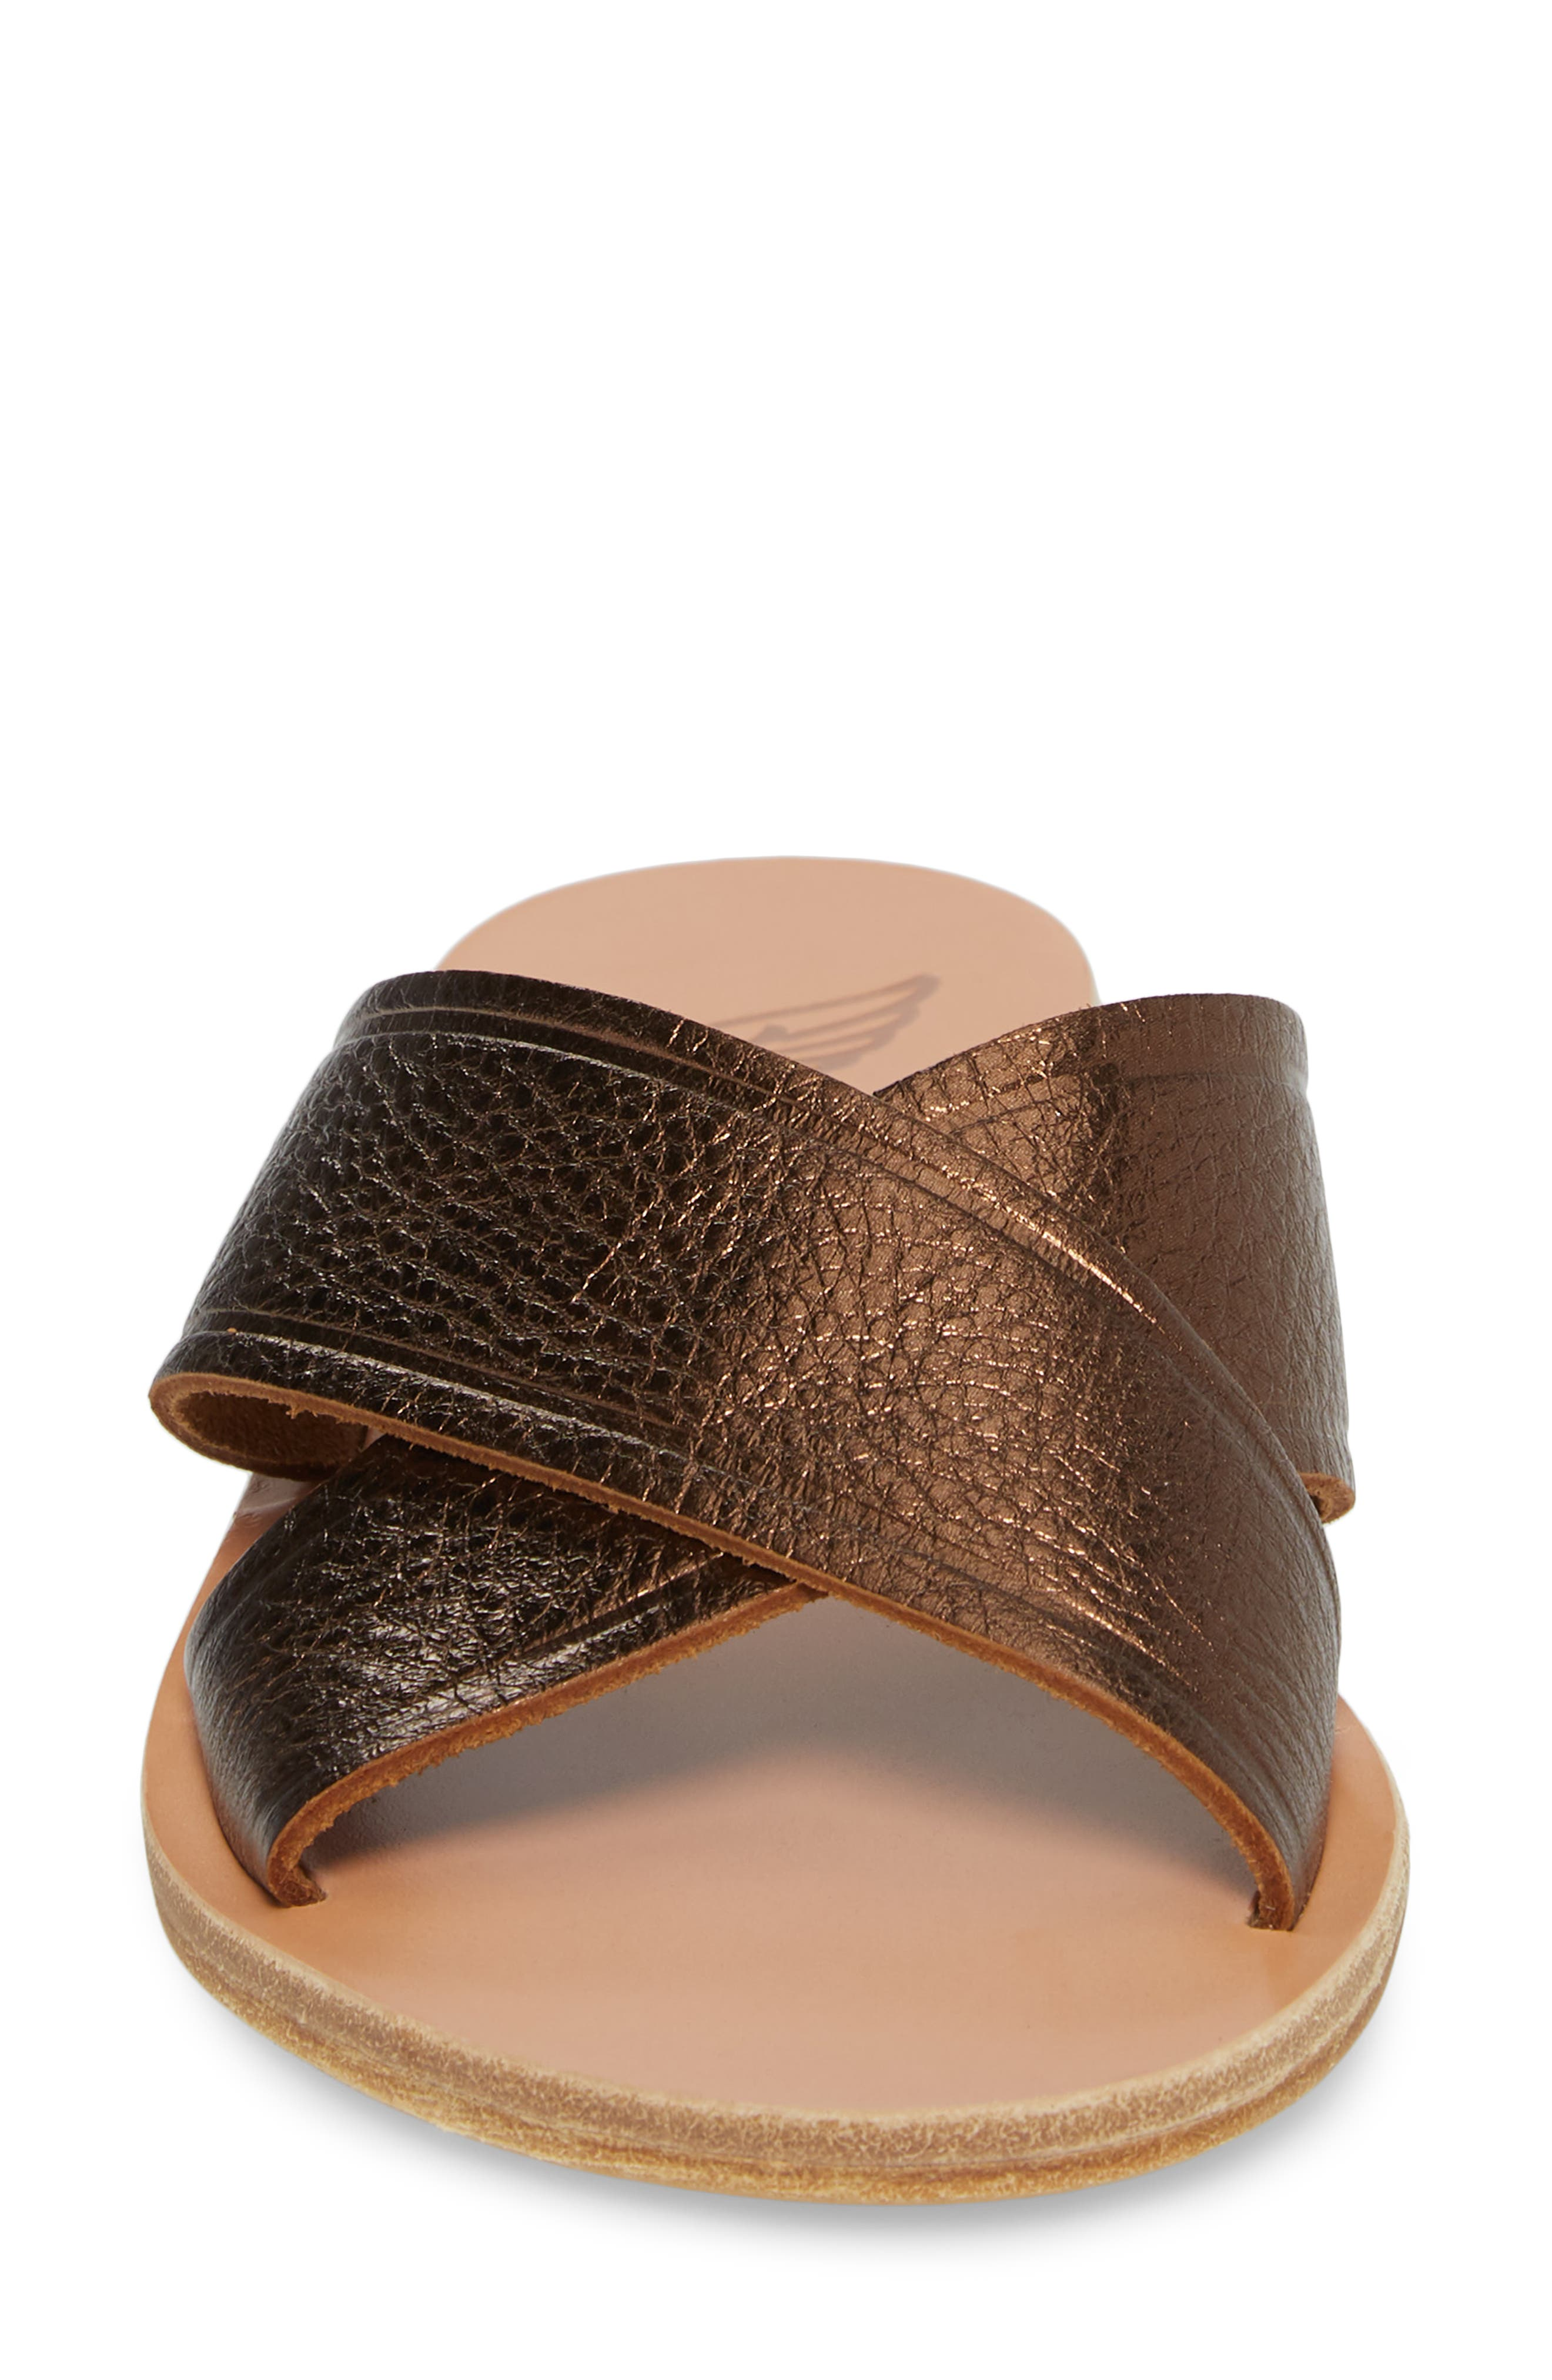 Thais Slide Sandal,                             Alternate thumbnail 4, color,                             Bronze/ Coco